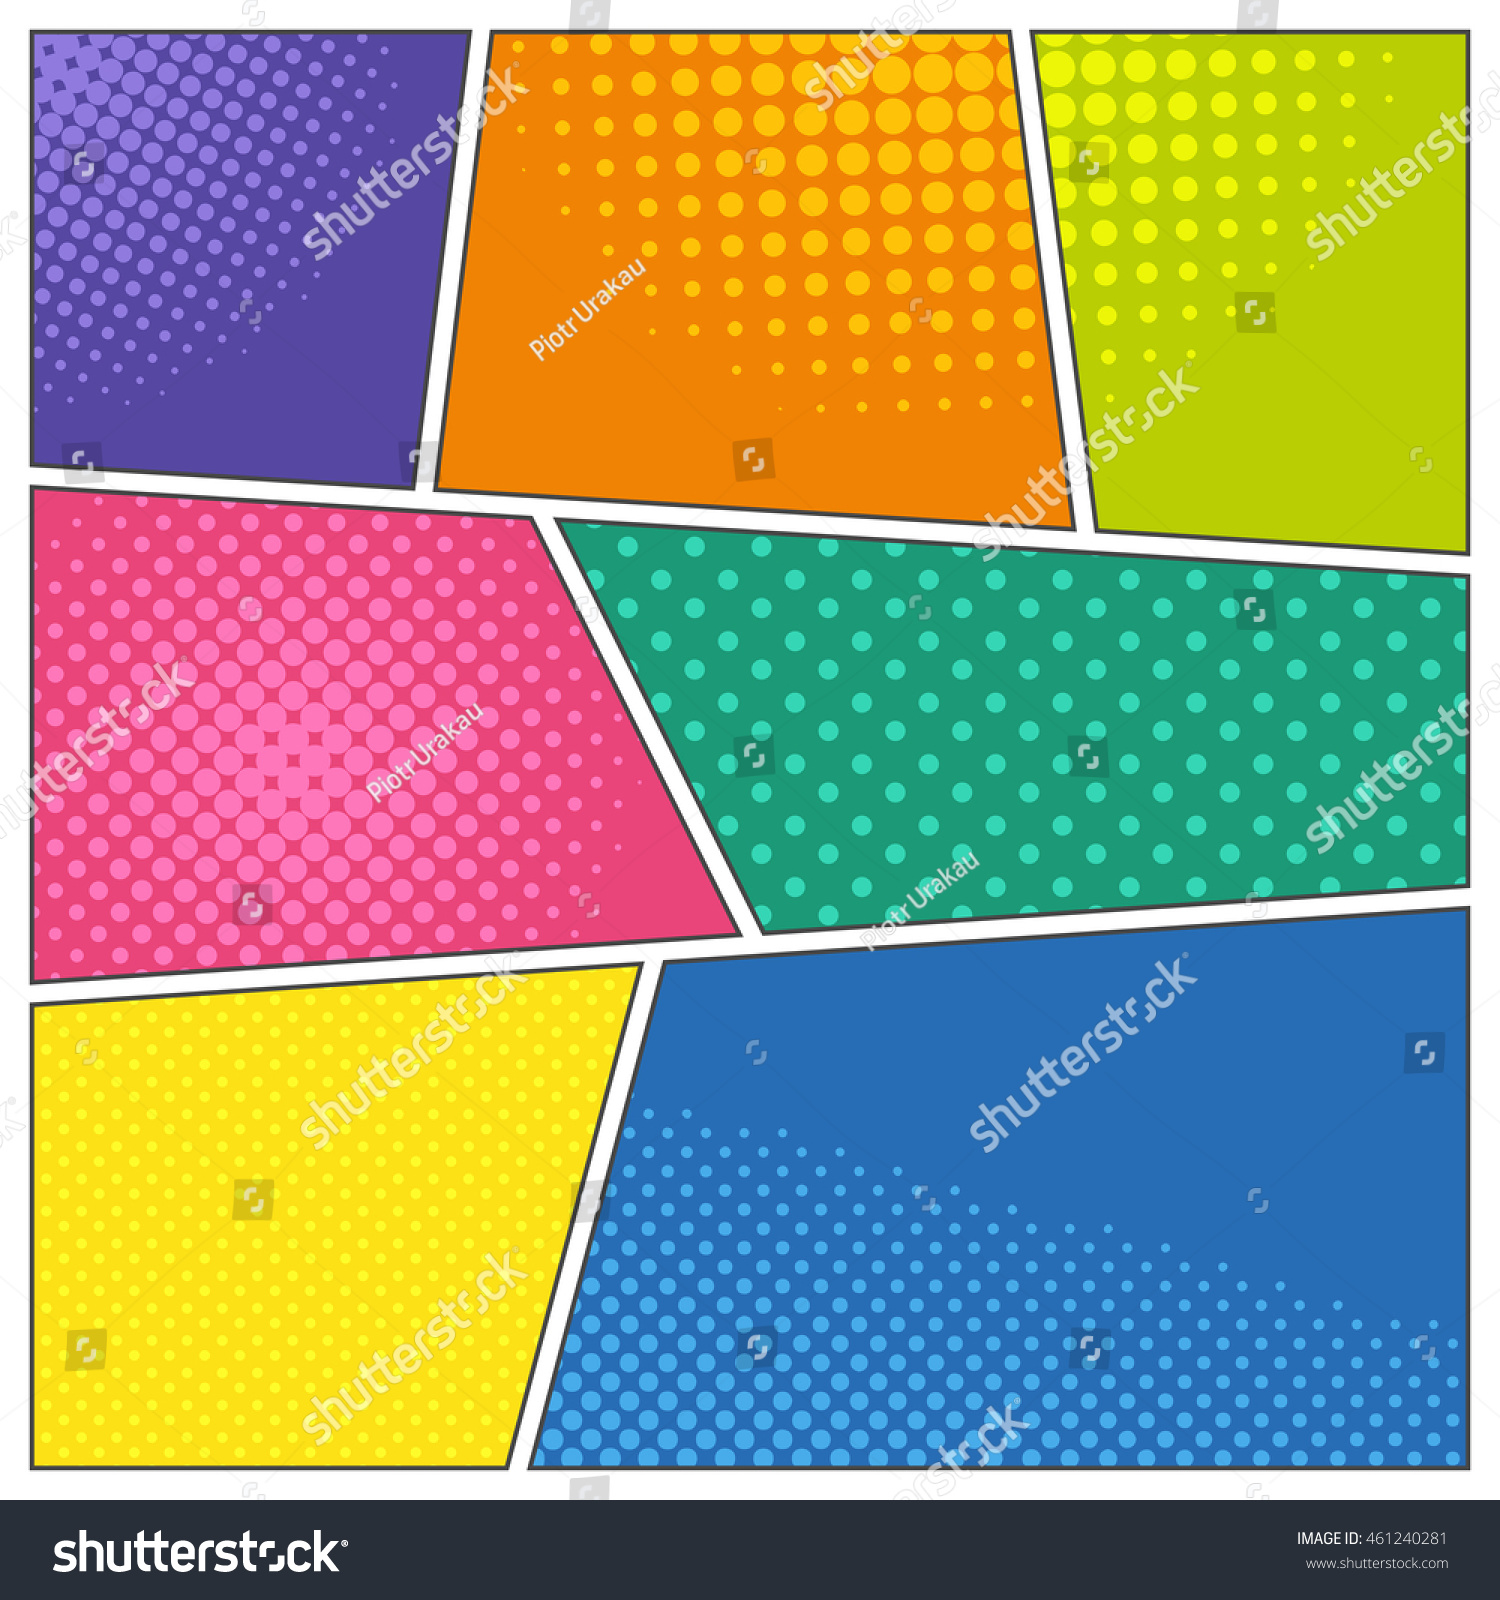 ic Book Frames Diffe Colors Dotted Stock Vector